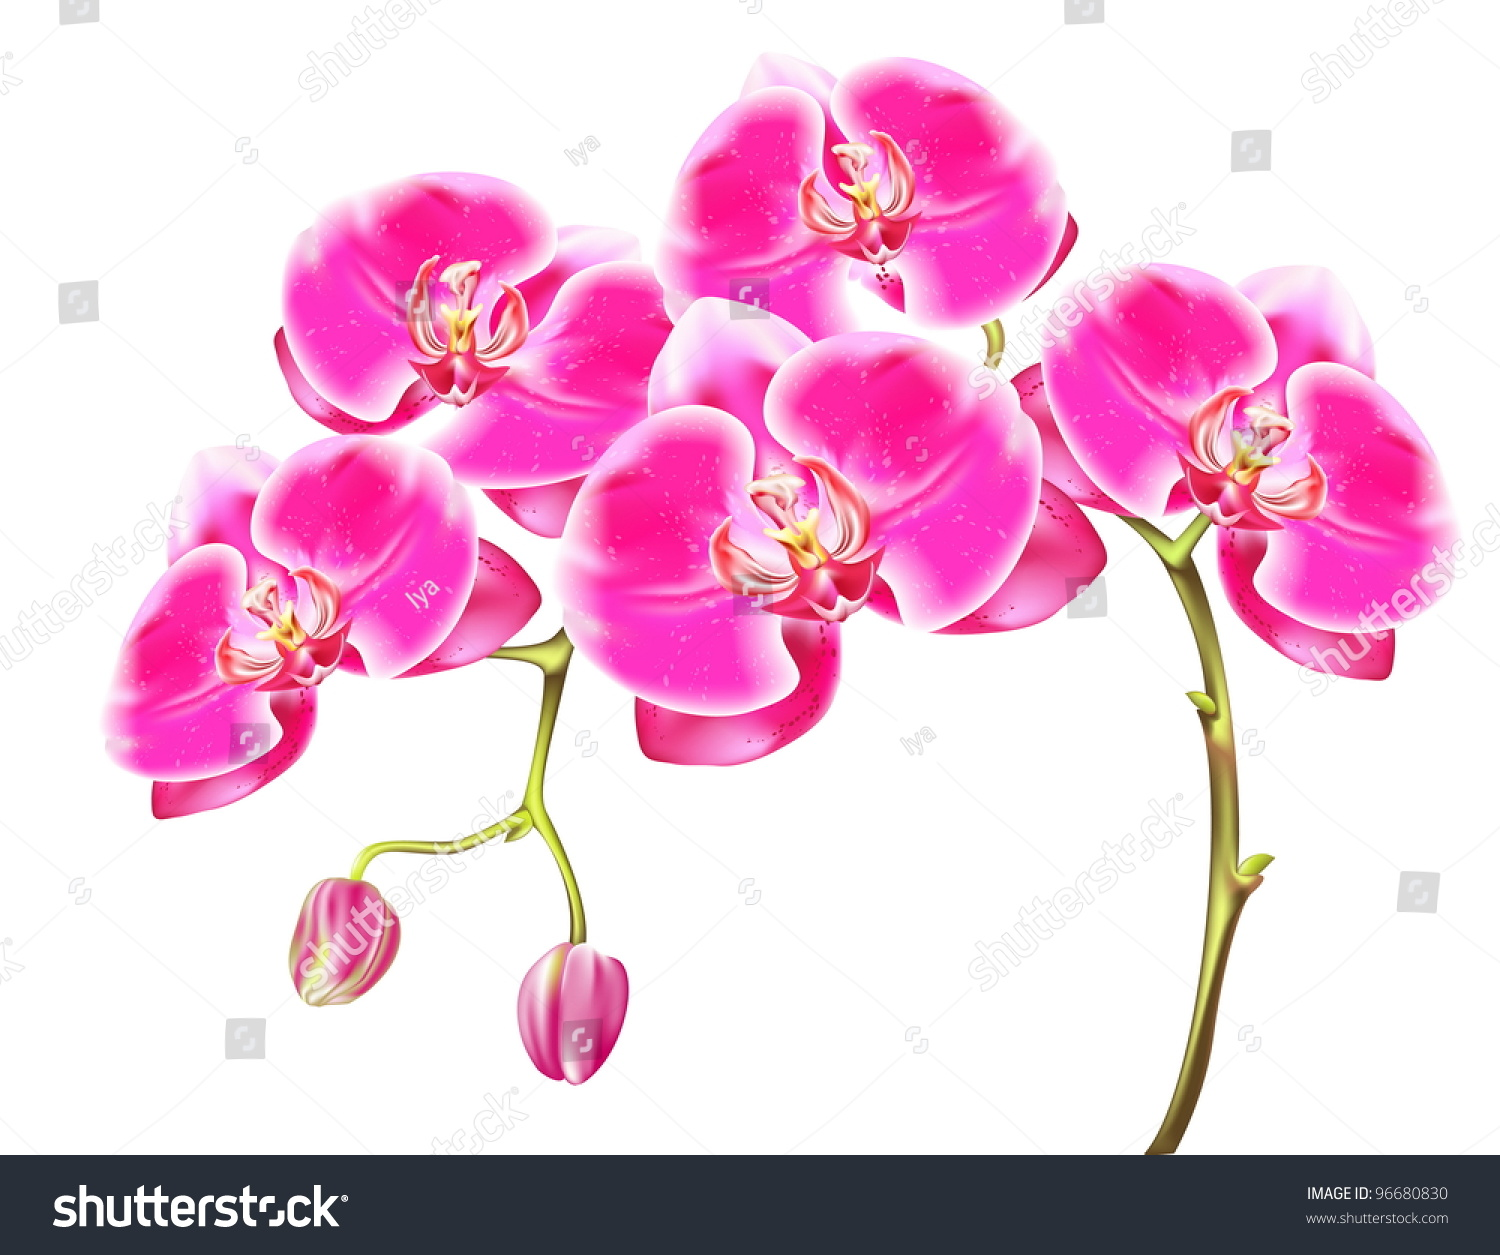 Drawing Sprigs Of Pink Orchids Stock Vector Illustration 96680830 ...